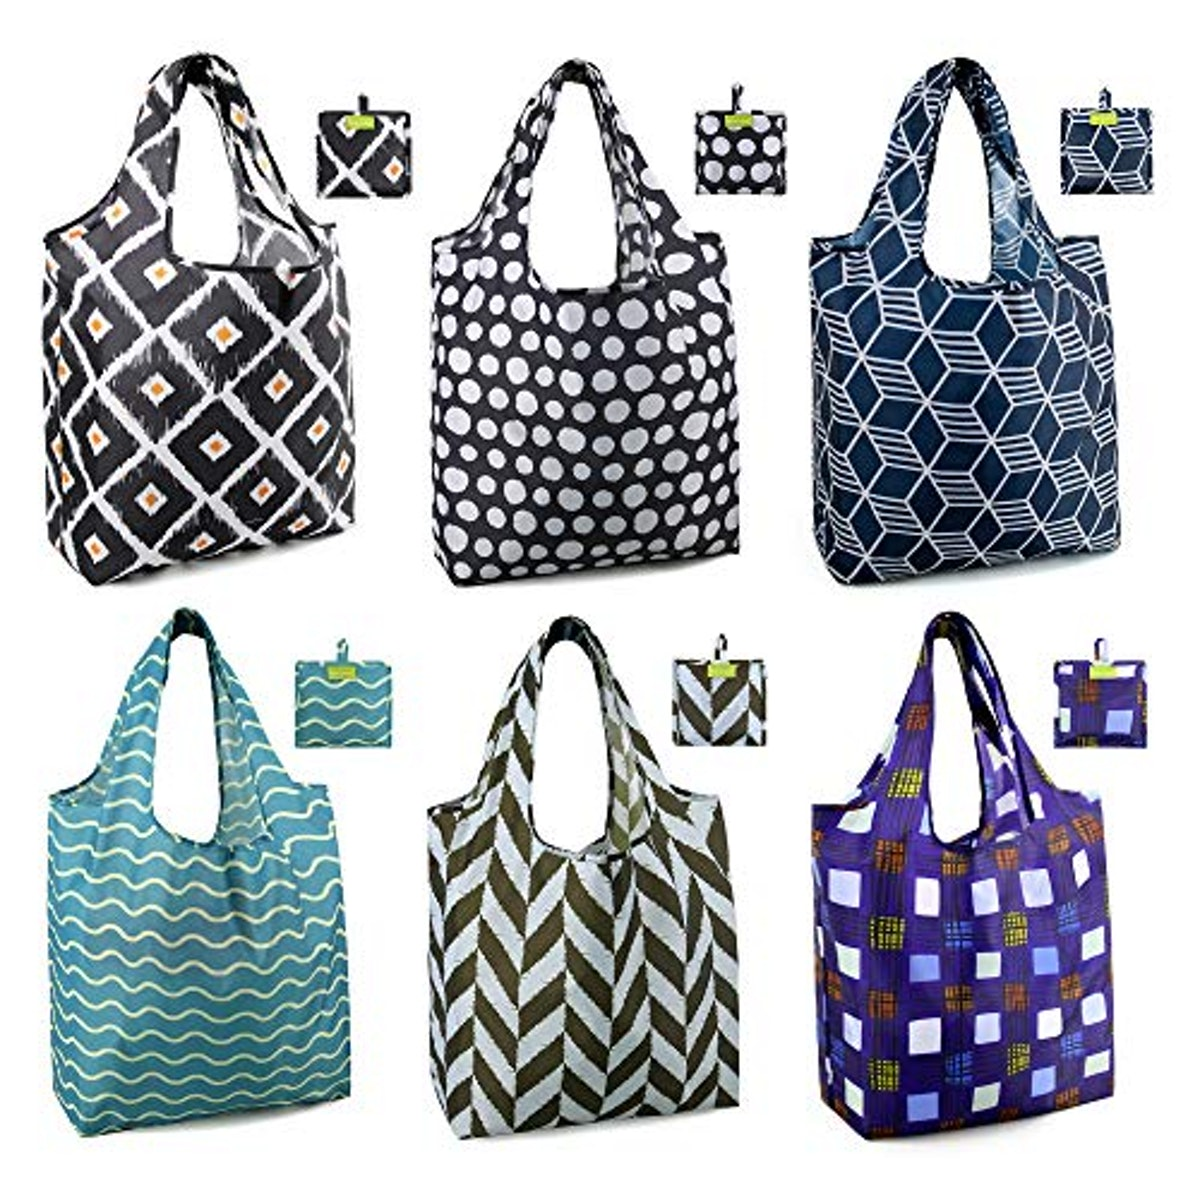 BeeGreen Reusable Grocery Bags (6-Pack)